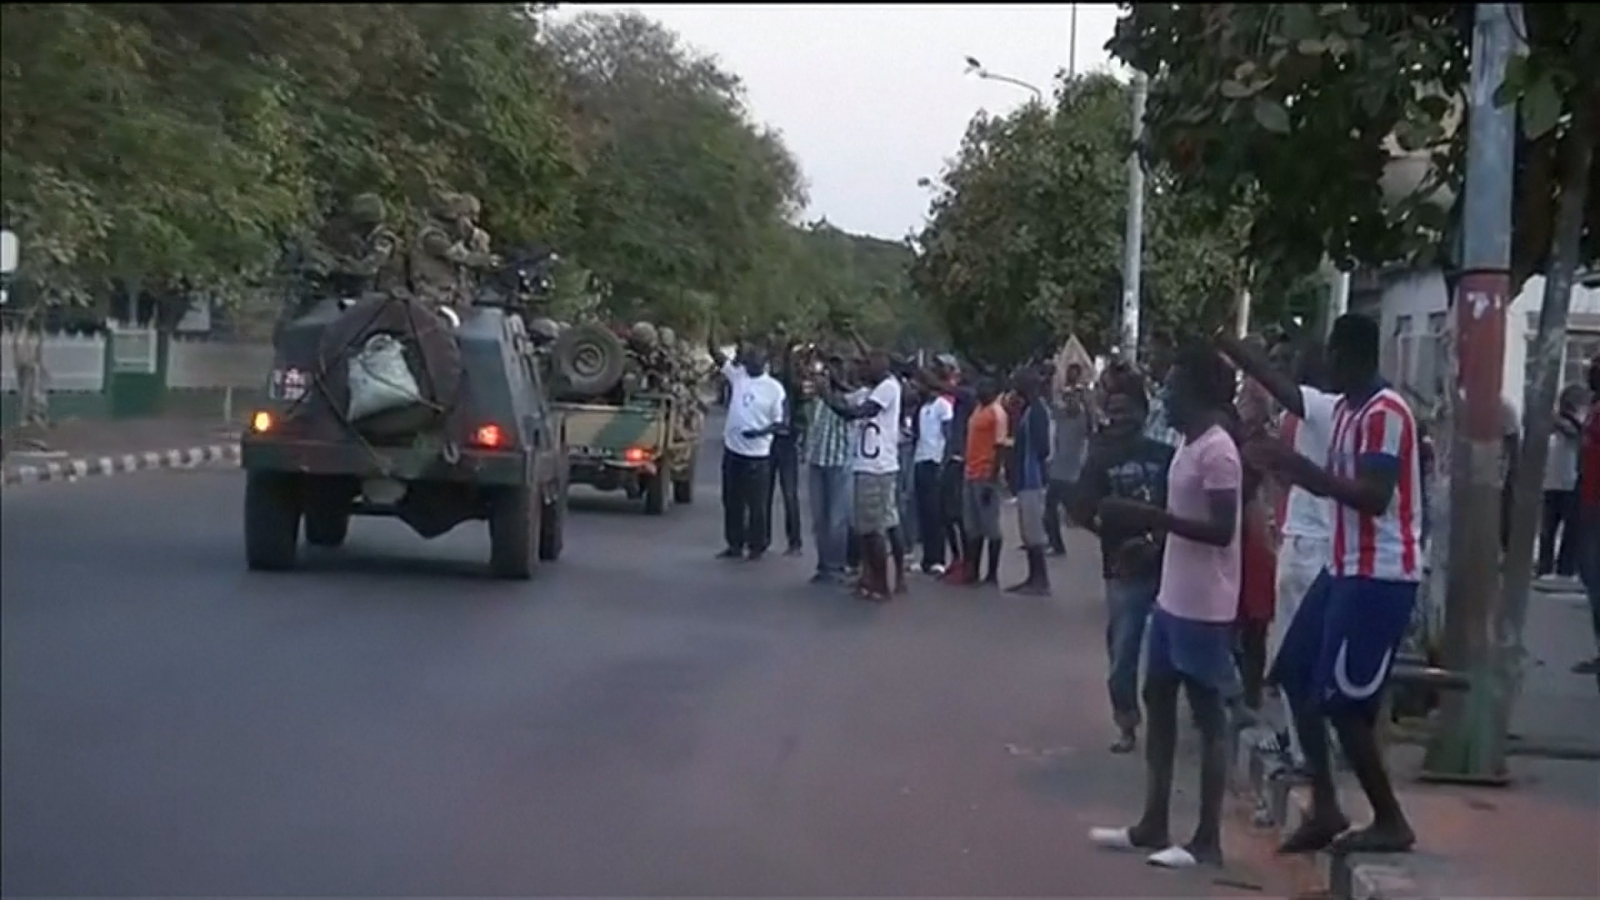 West African military force enters Gambia capital